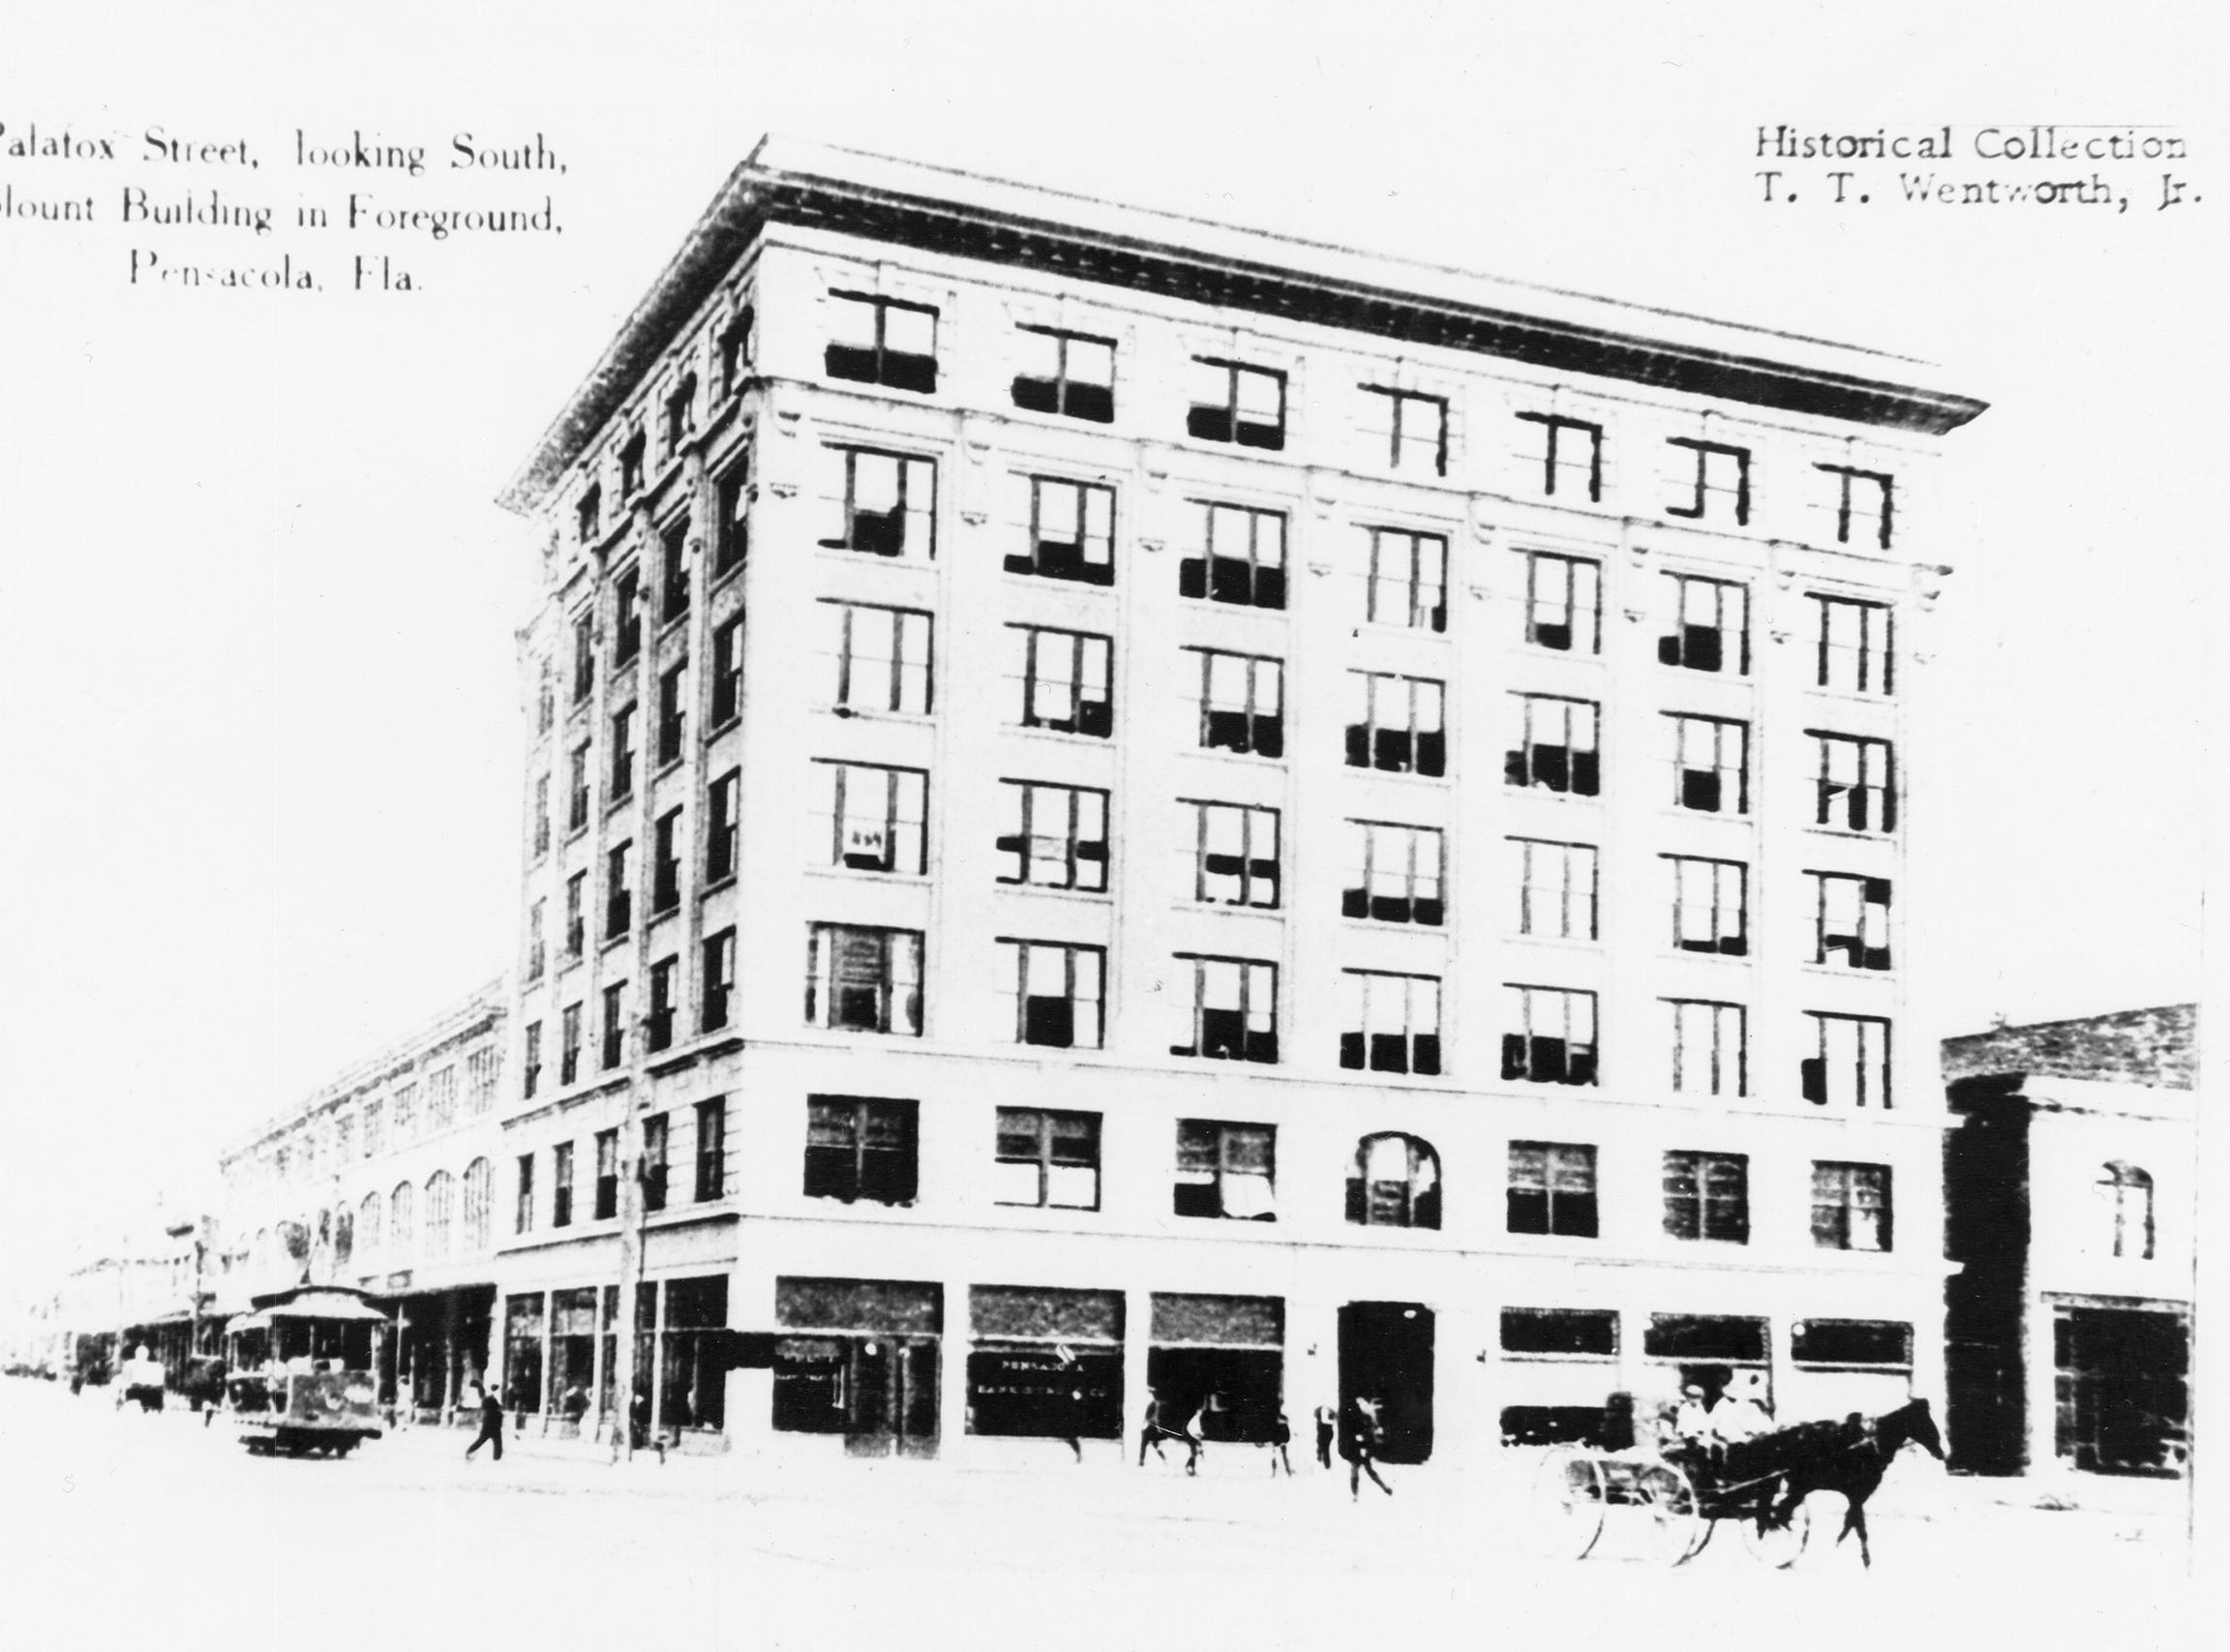 Blount Building on Palafox Street. Date unknown.